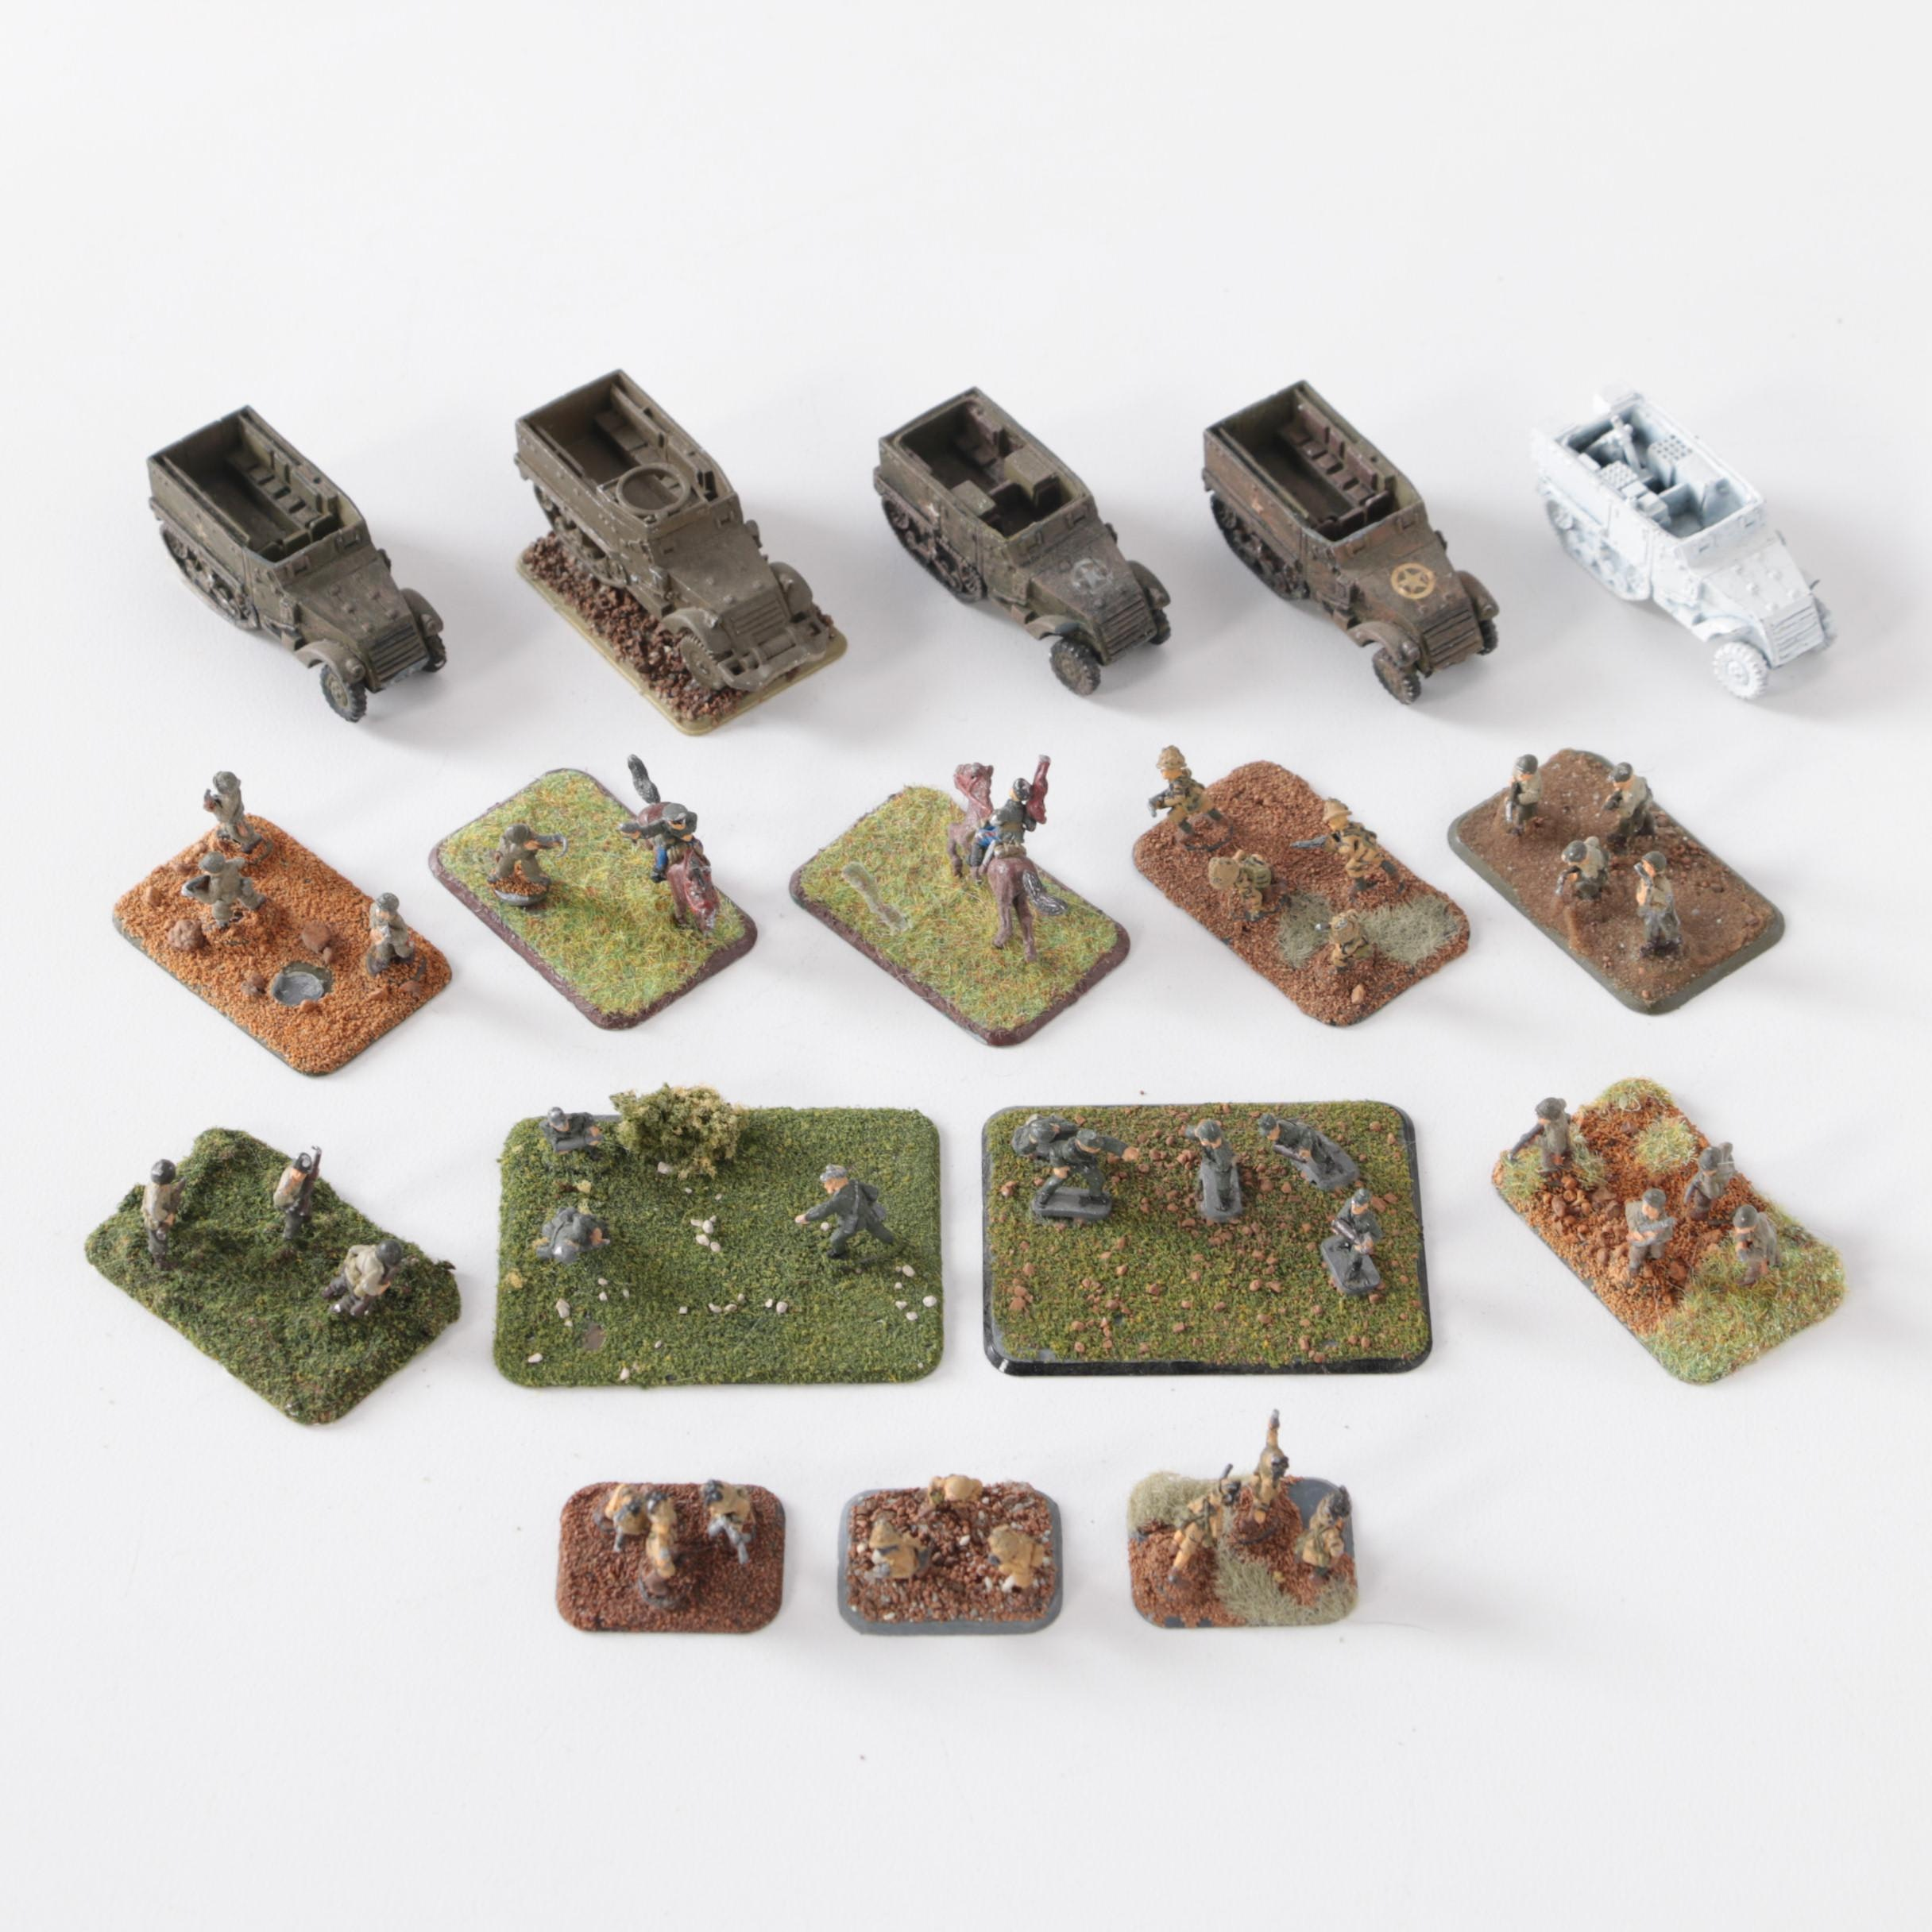 Military Themed Painted Soldiers and Military Vehicles with Turf